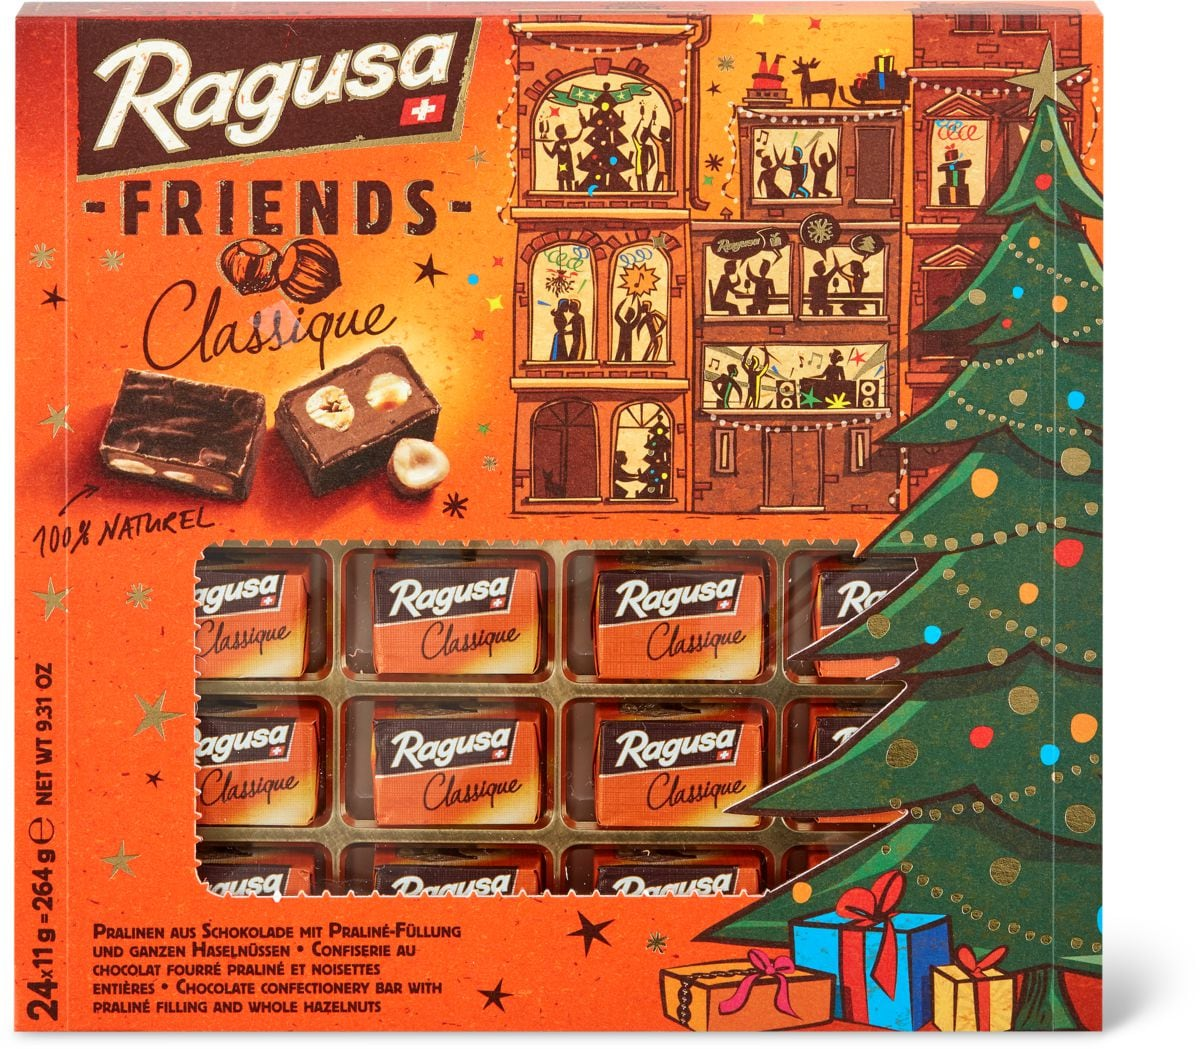 Ragusa For Friends Classic